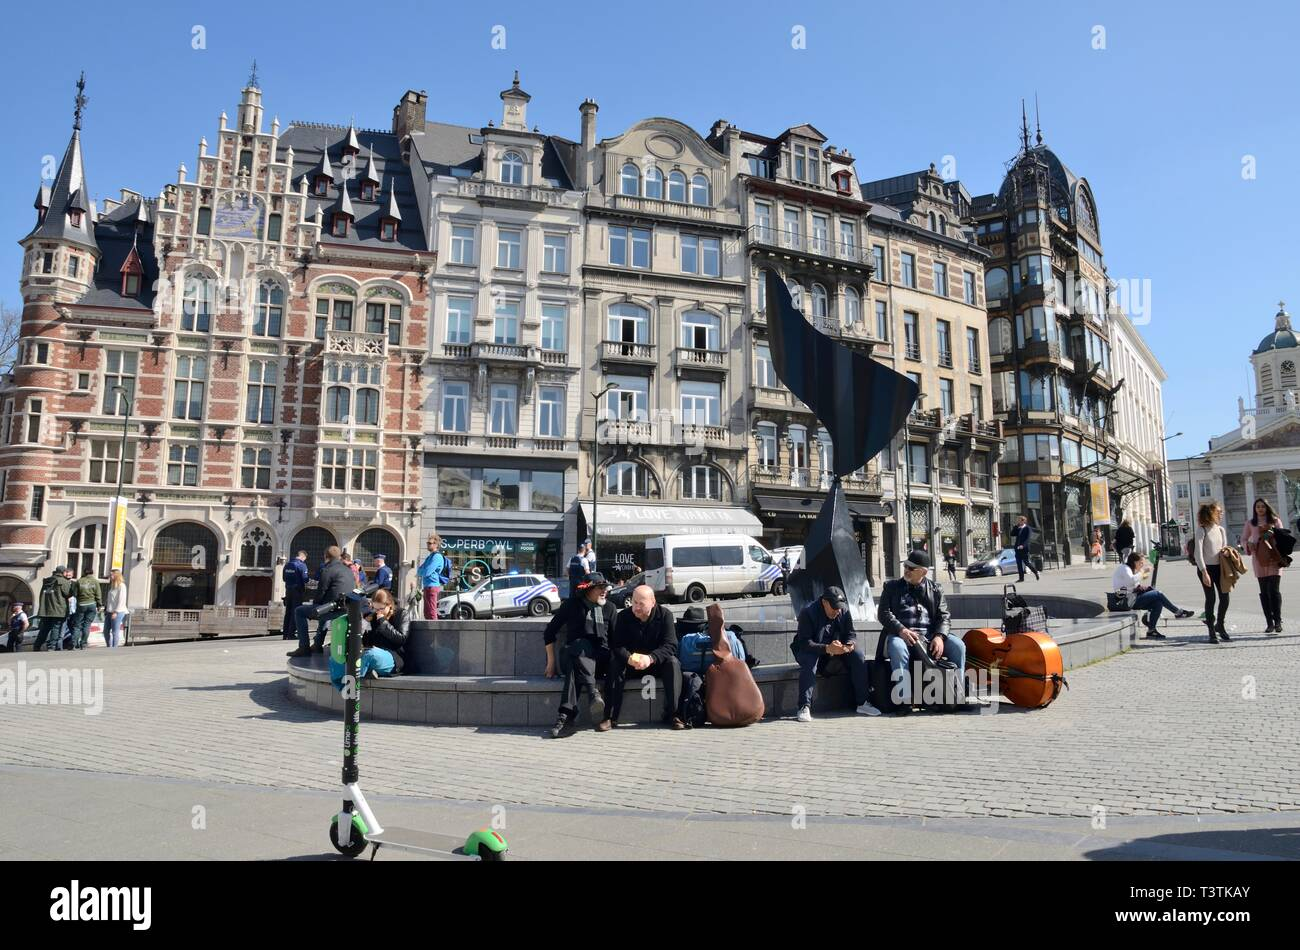 Brussels, Belgium - March 29, 2019: Musicians in front of the Whirling Ear sculpture by Alexander Calder in square of Brussels, Belgium. - Stock Image